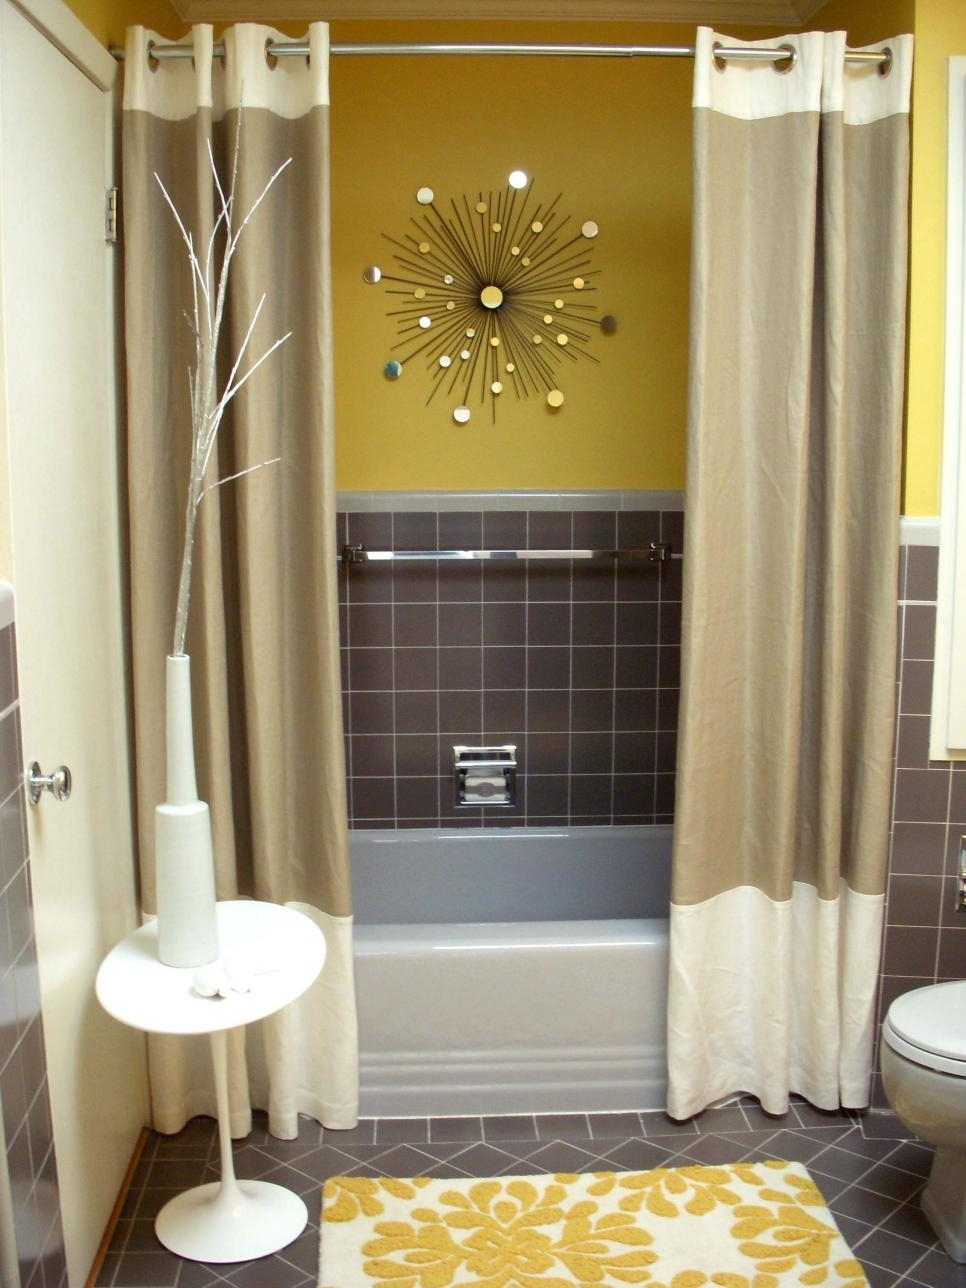 10 Perfect Small Bathroom Remodel Ideas On A Budget %name 2020